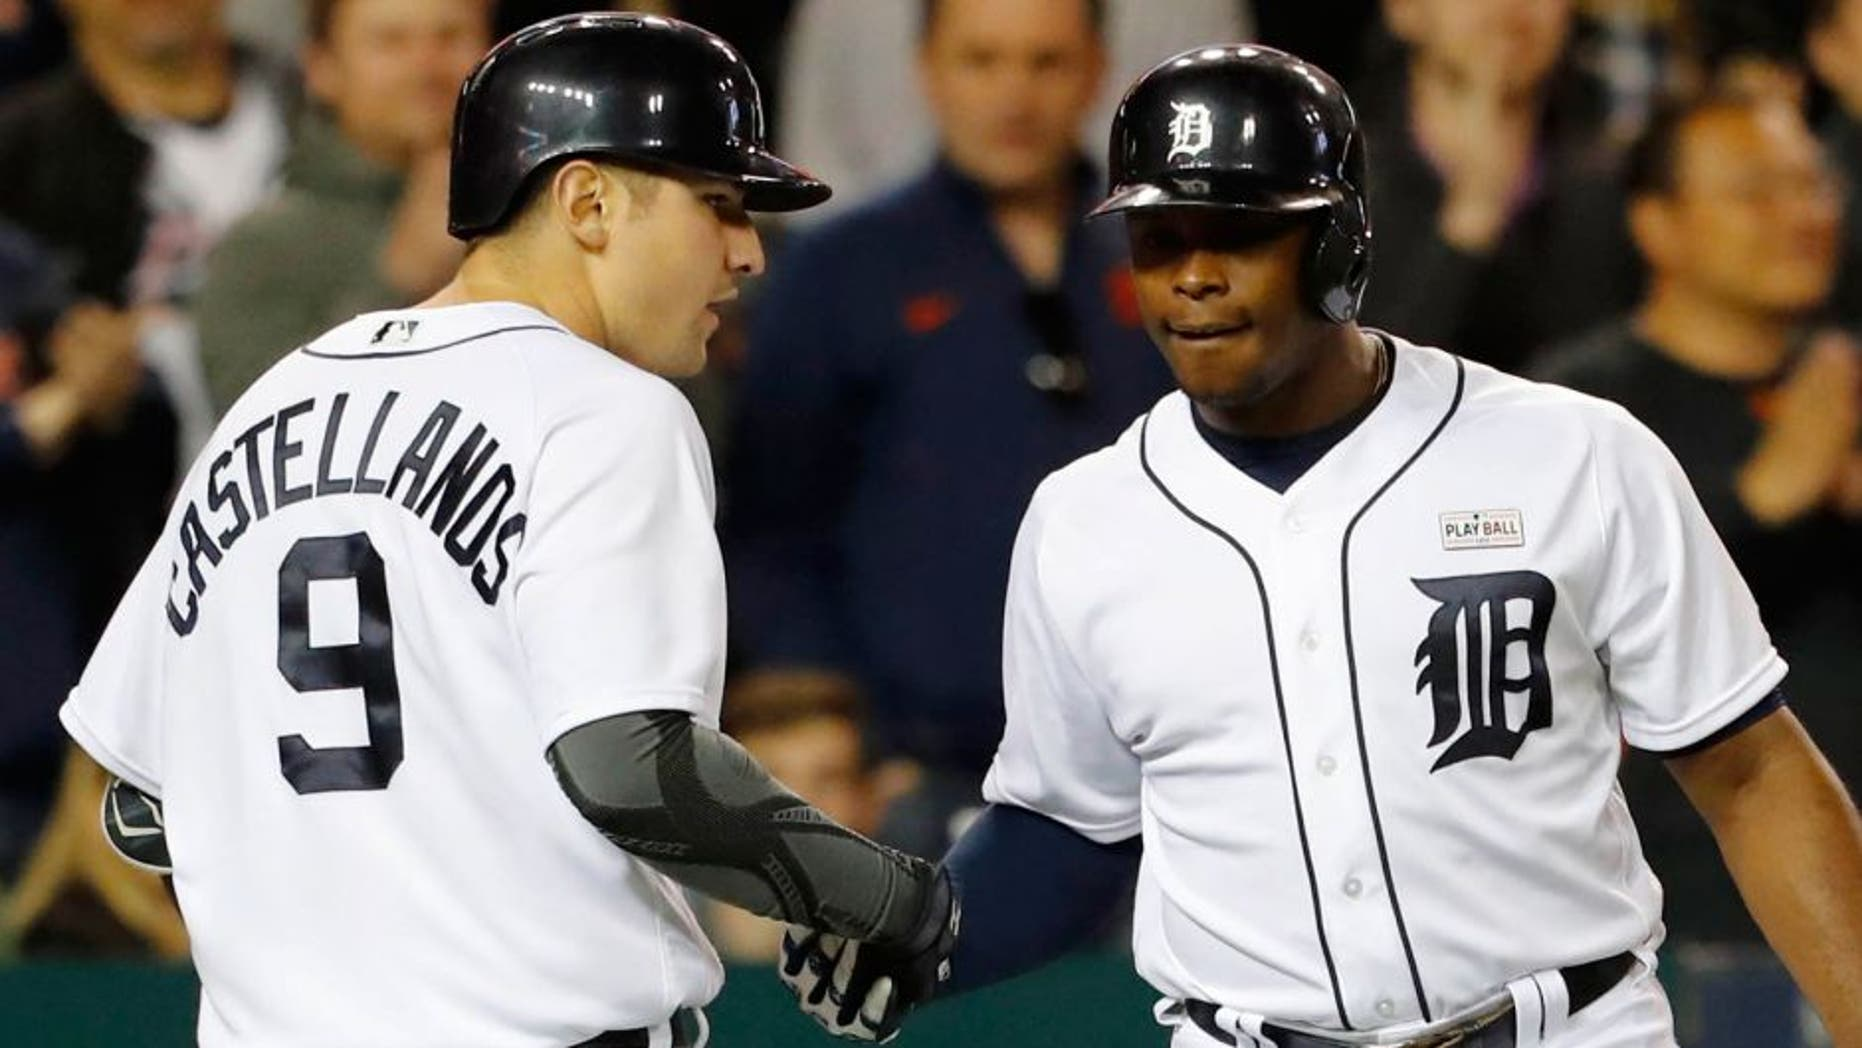 May 16, 2016; Detroit, MI, USA; Detroit Tigers third baseman Nick Castellanos (9) receives congratulations from left fielder Justin Upton (8) after he hits a home run in the seventh inning against the Minnesota Twins at Comerica Park. Mandatory Credit: Rick Osentoski-USA TODAY Sports